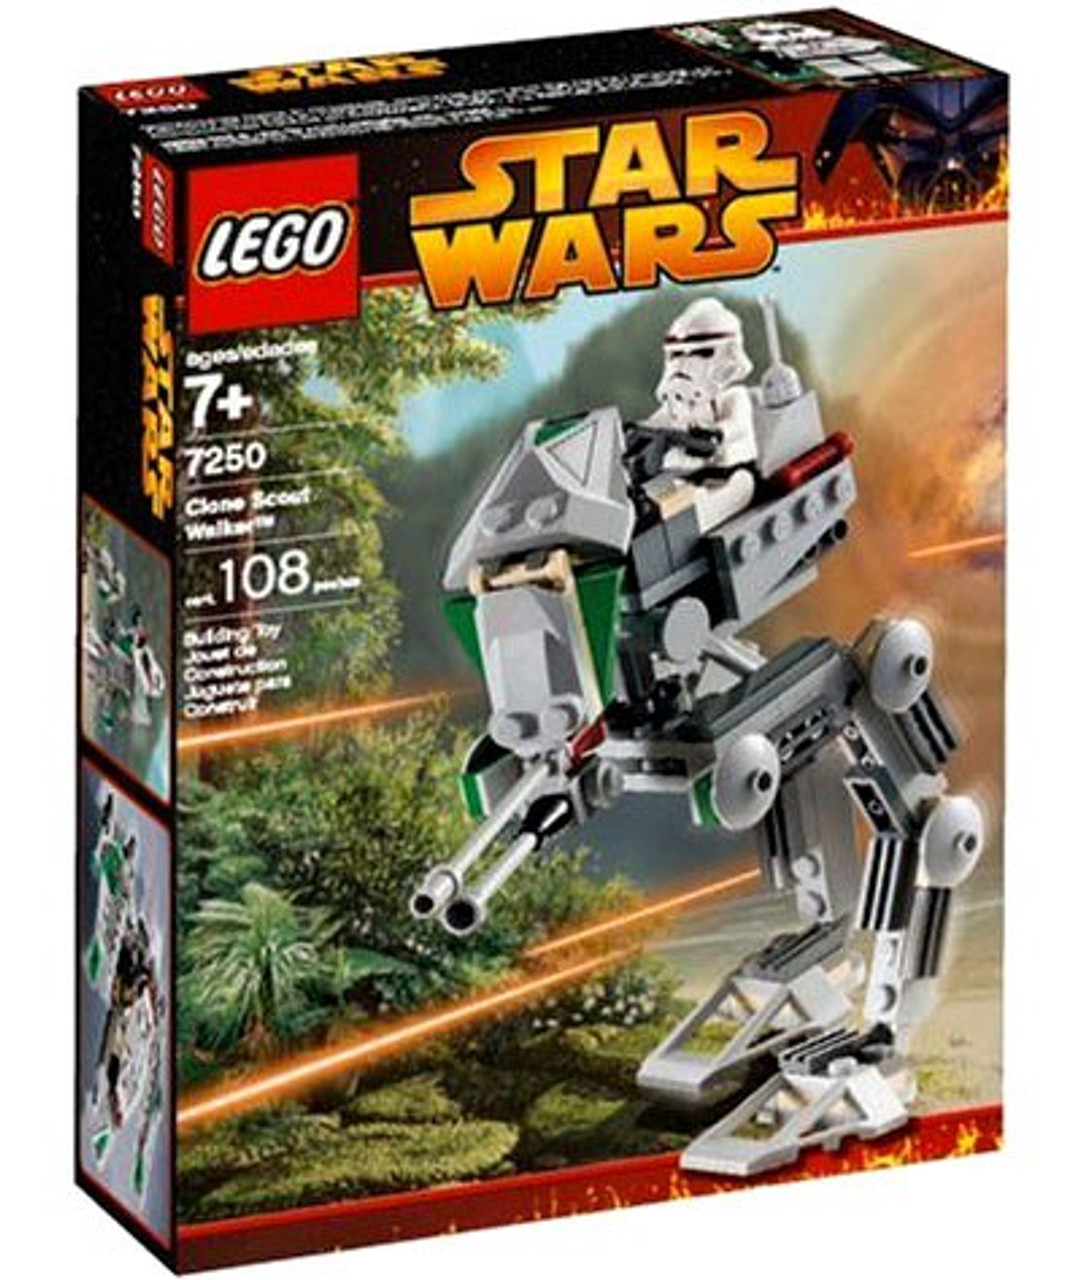 LEGO Star Wars Revenge of the Sith Clone Scout Walker Set #7250